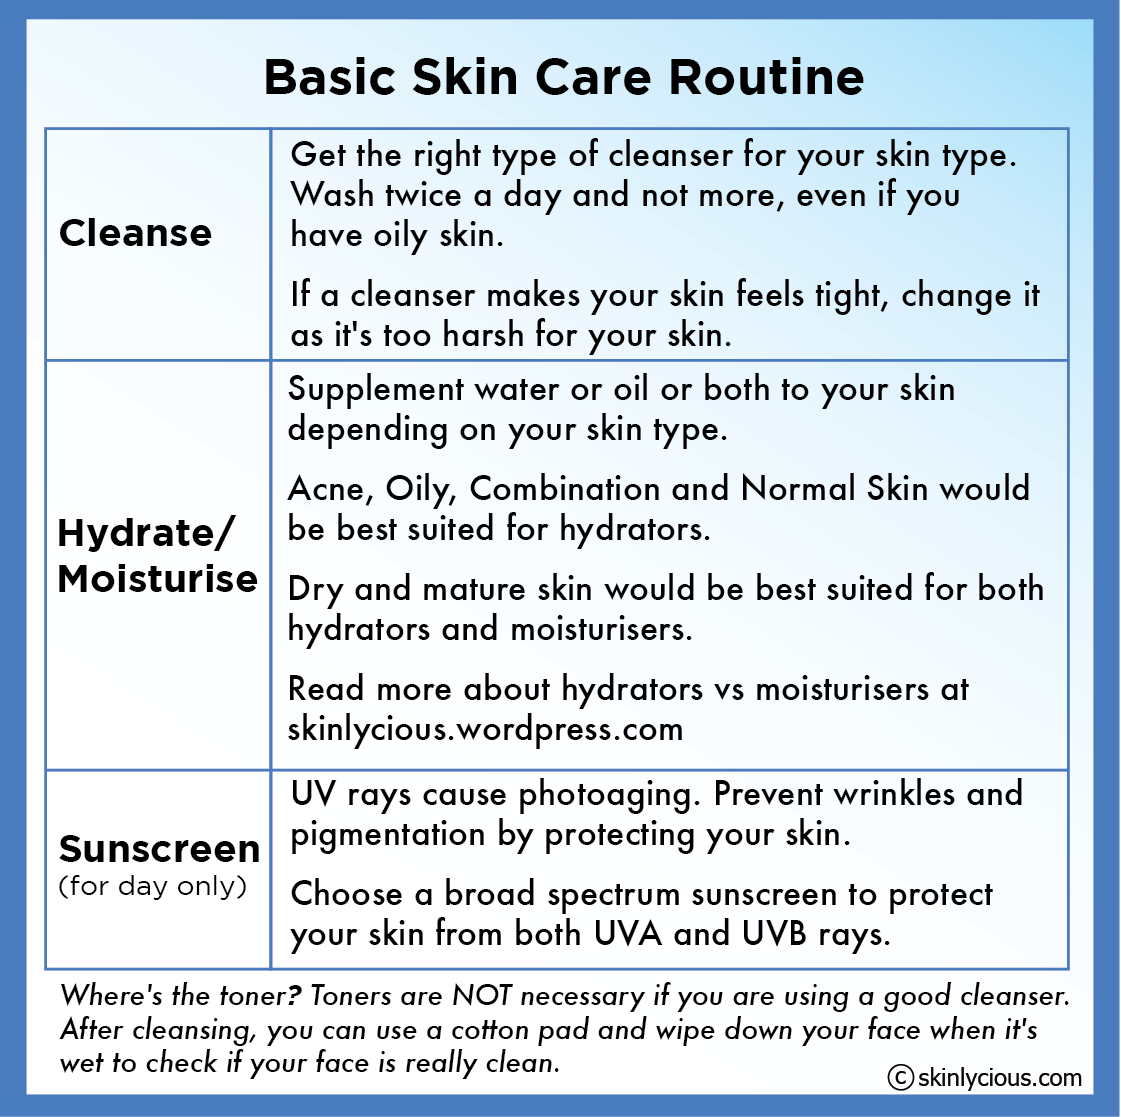 Proper skin care for the face